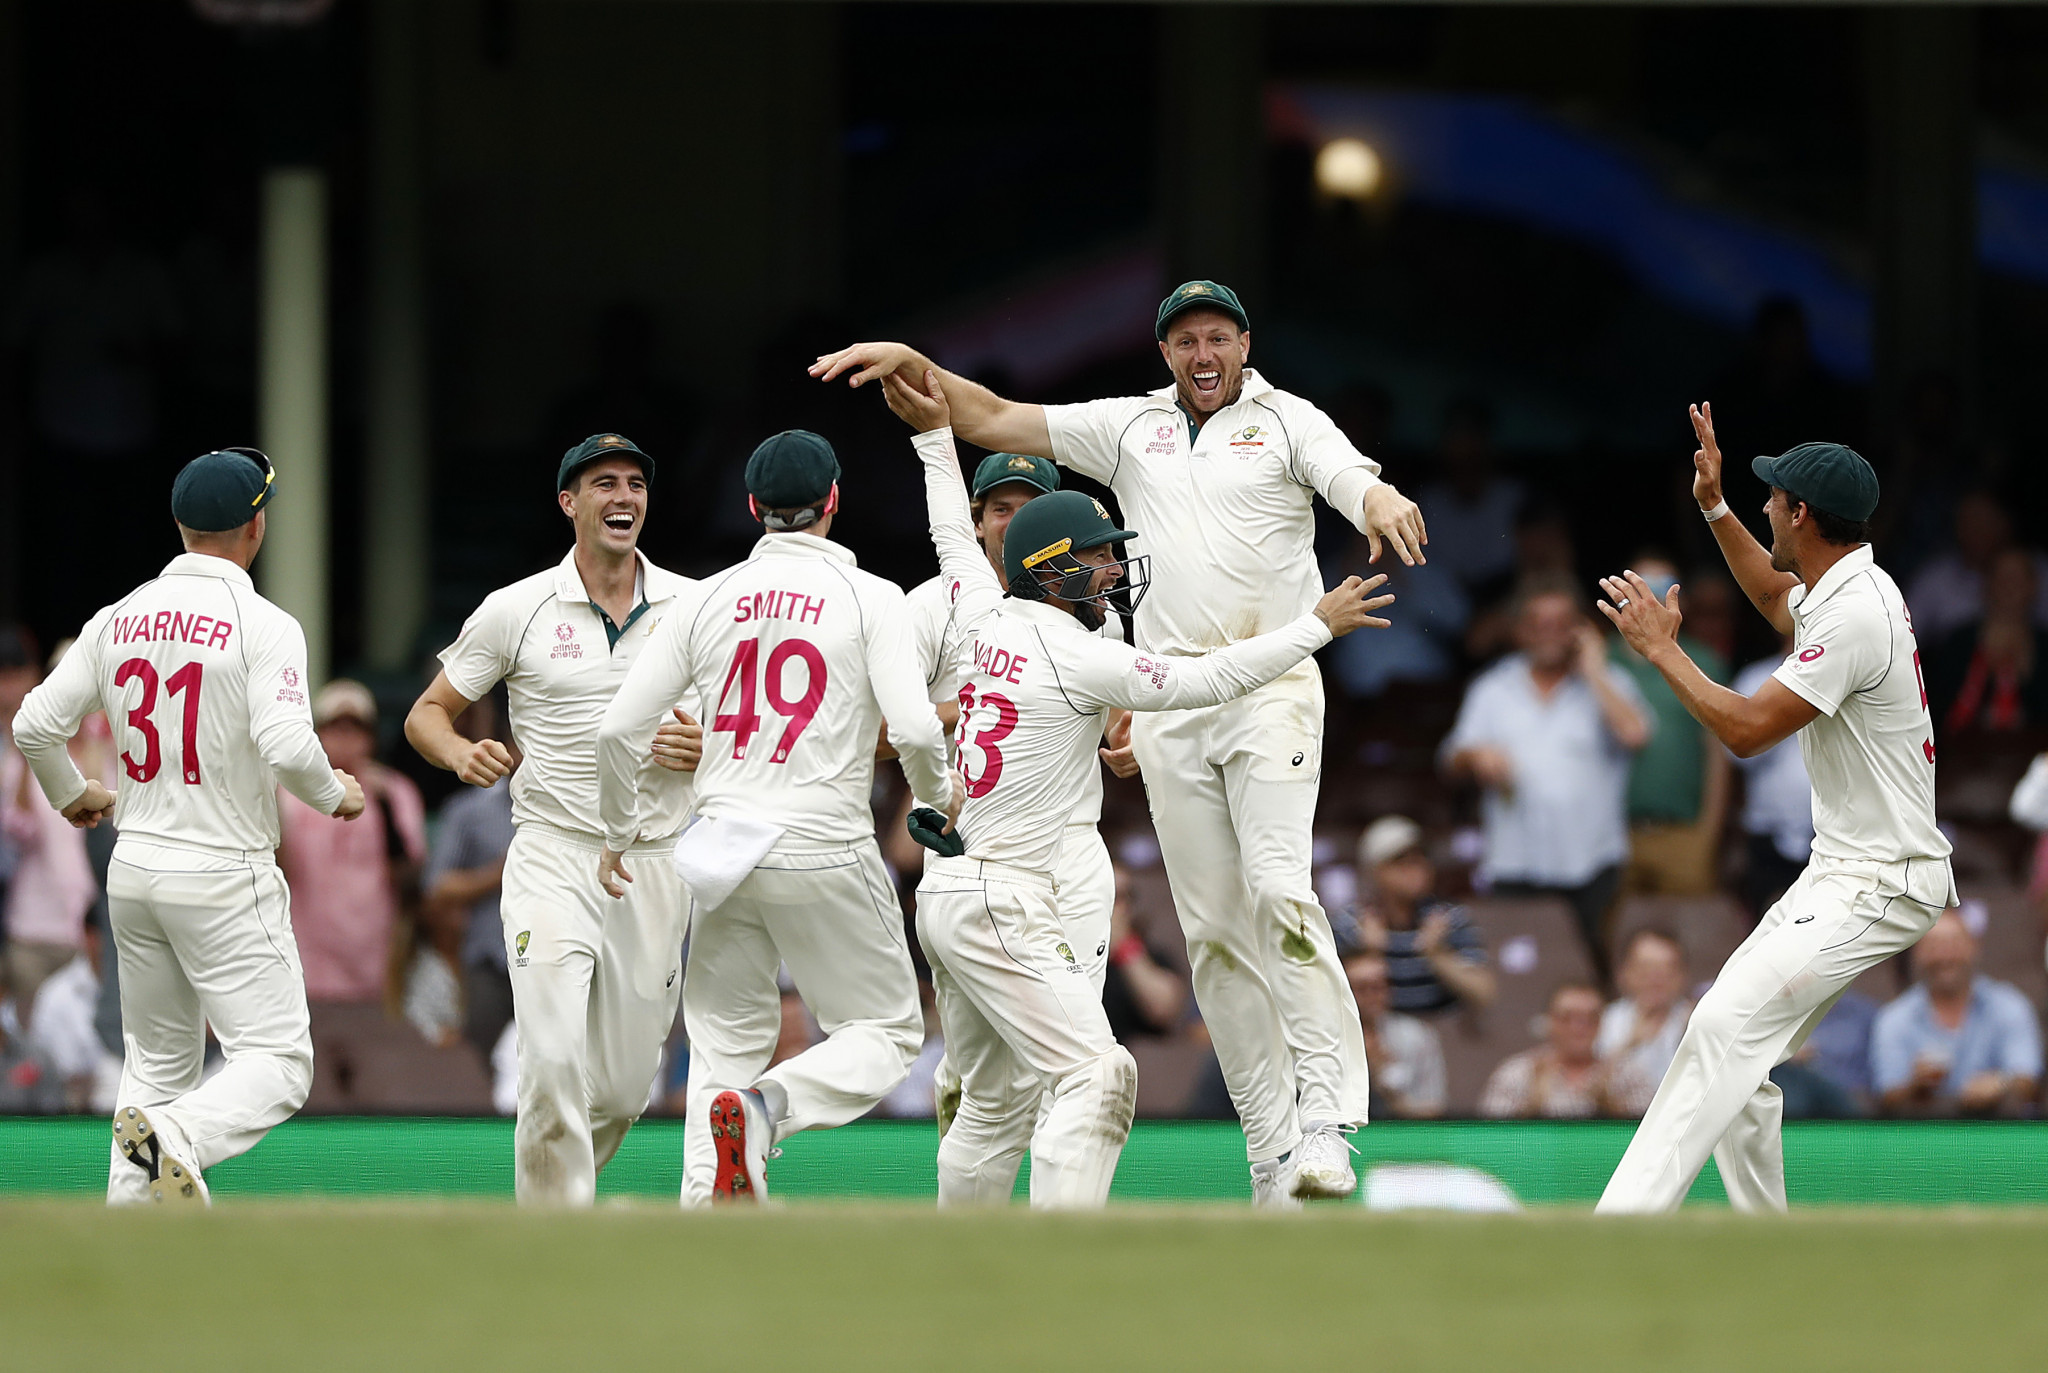 Australia have overtaken India at the top of the World Test Championship standings following the ICC's decision to change the points system ©Getty Images